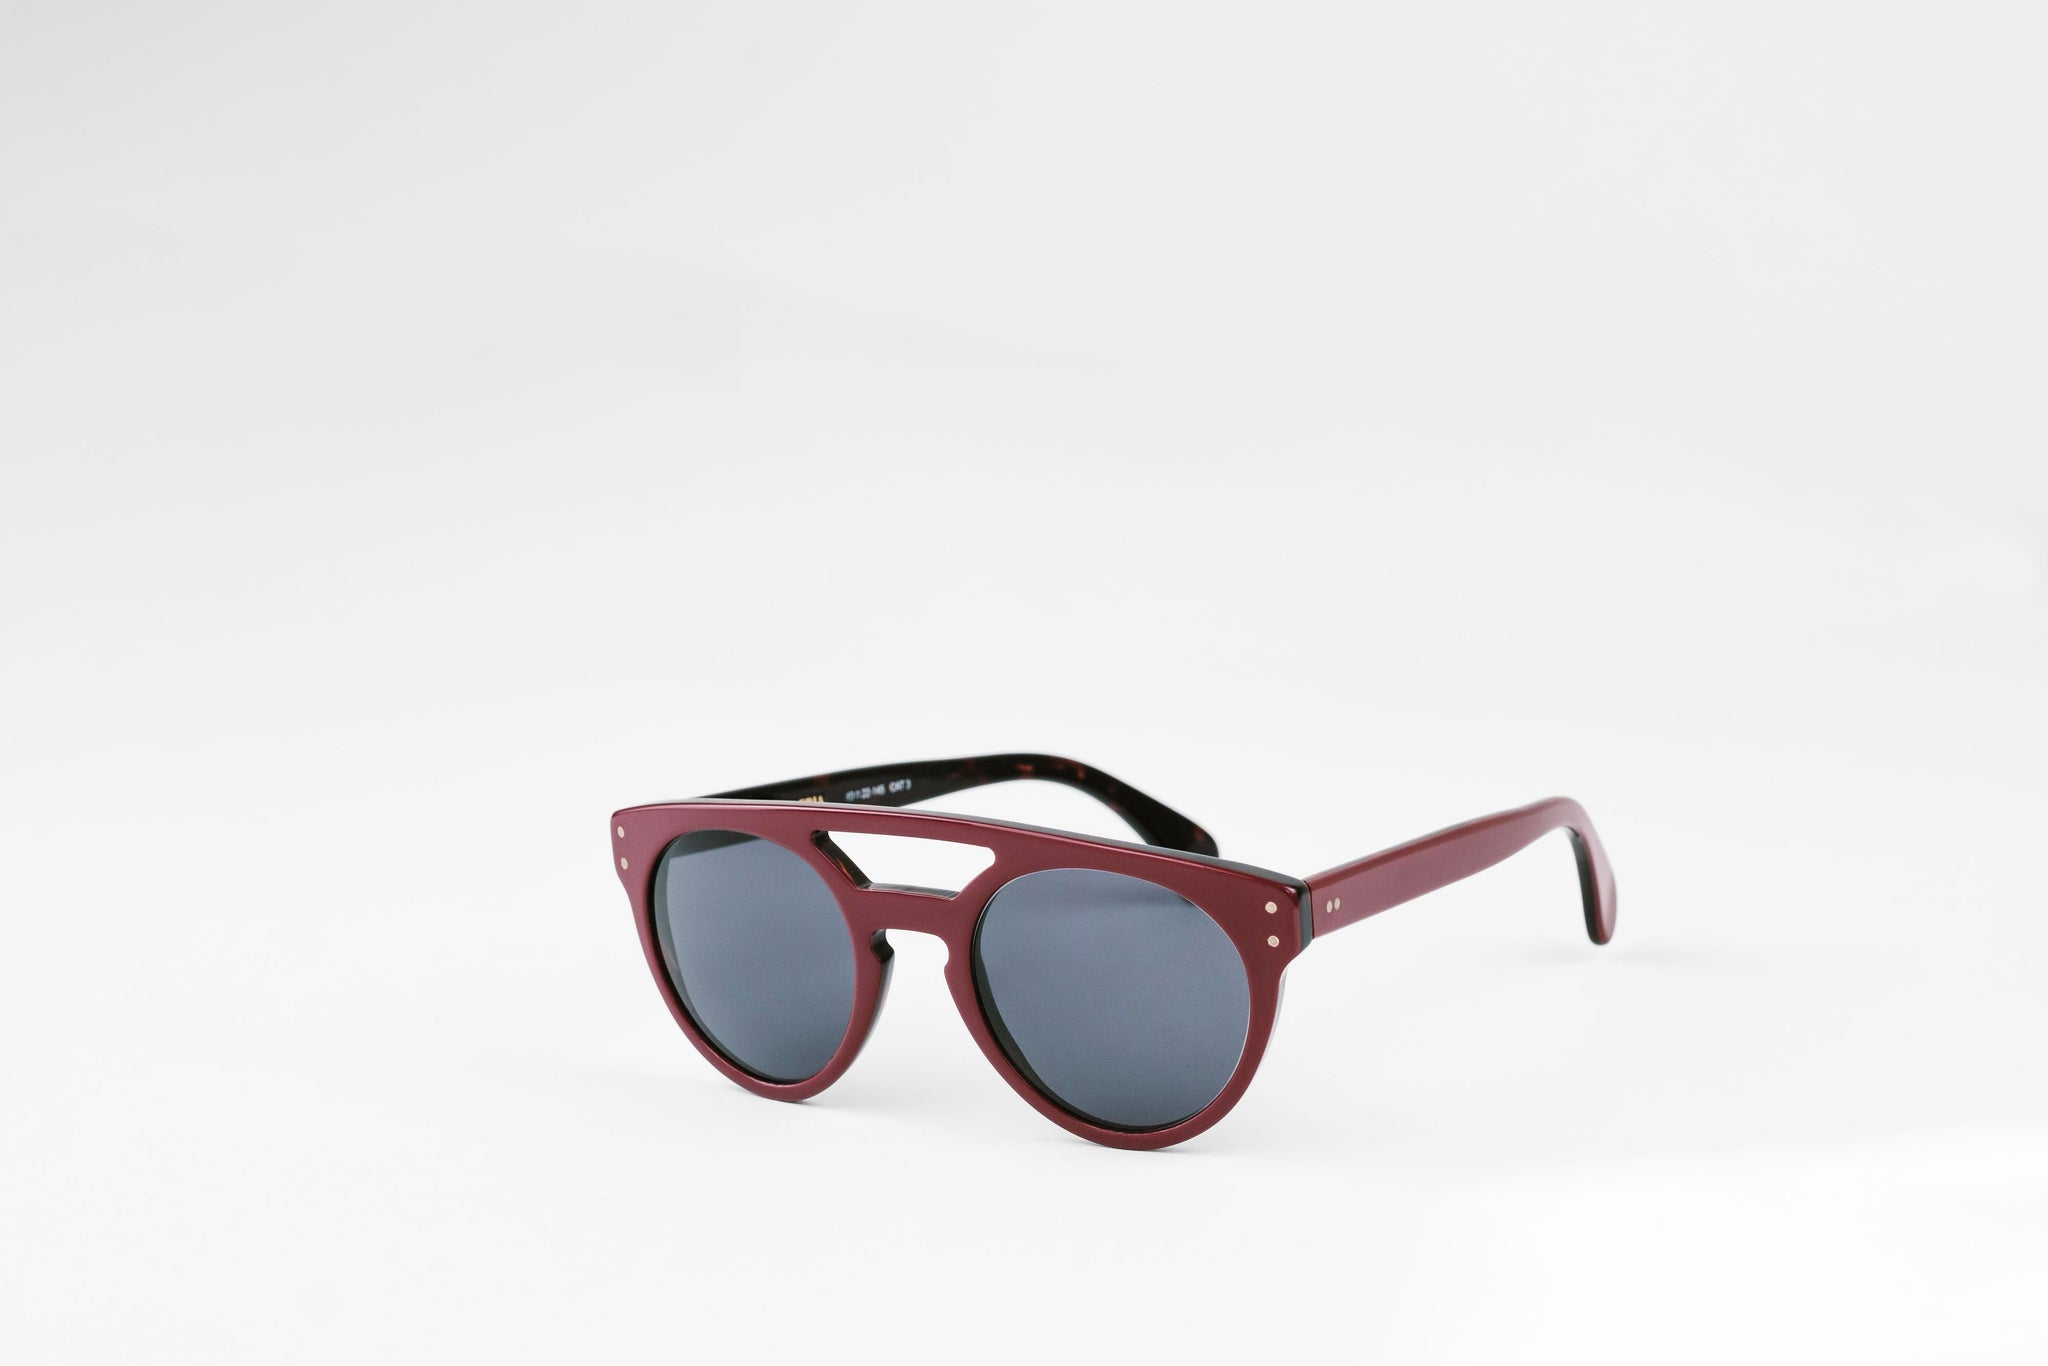 Avatar Limited Edition Sunglasses